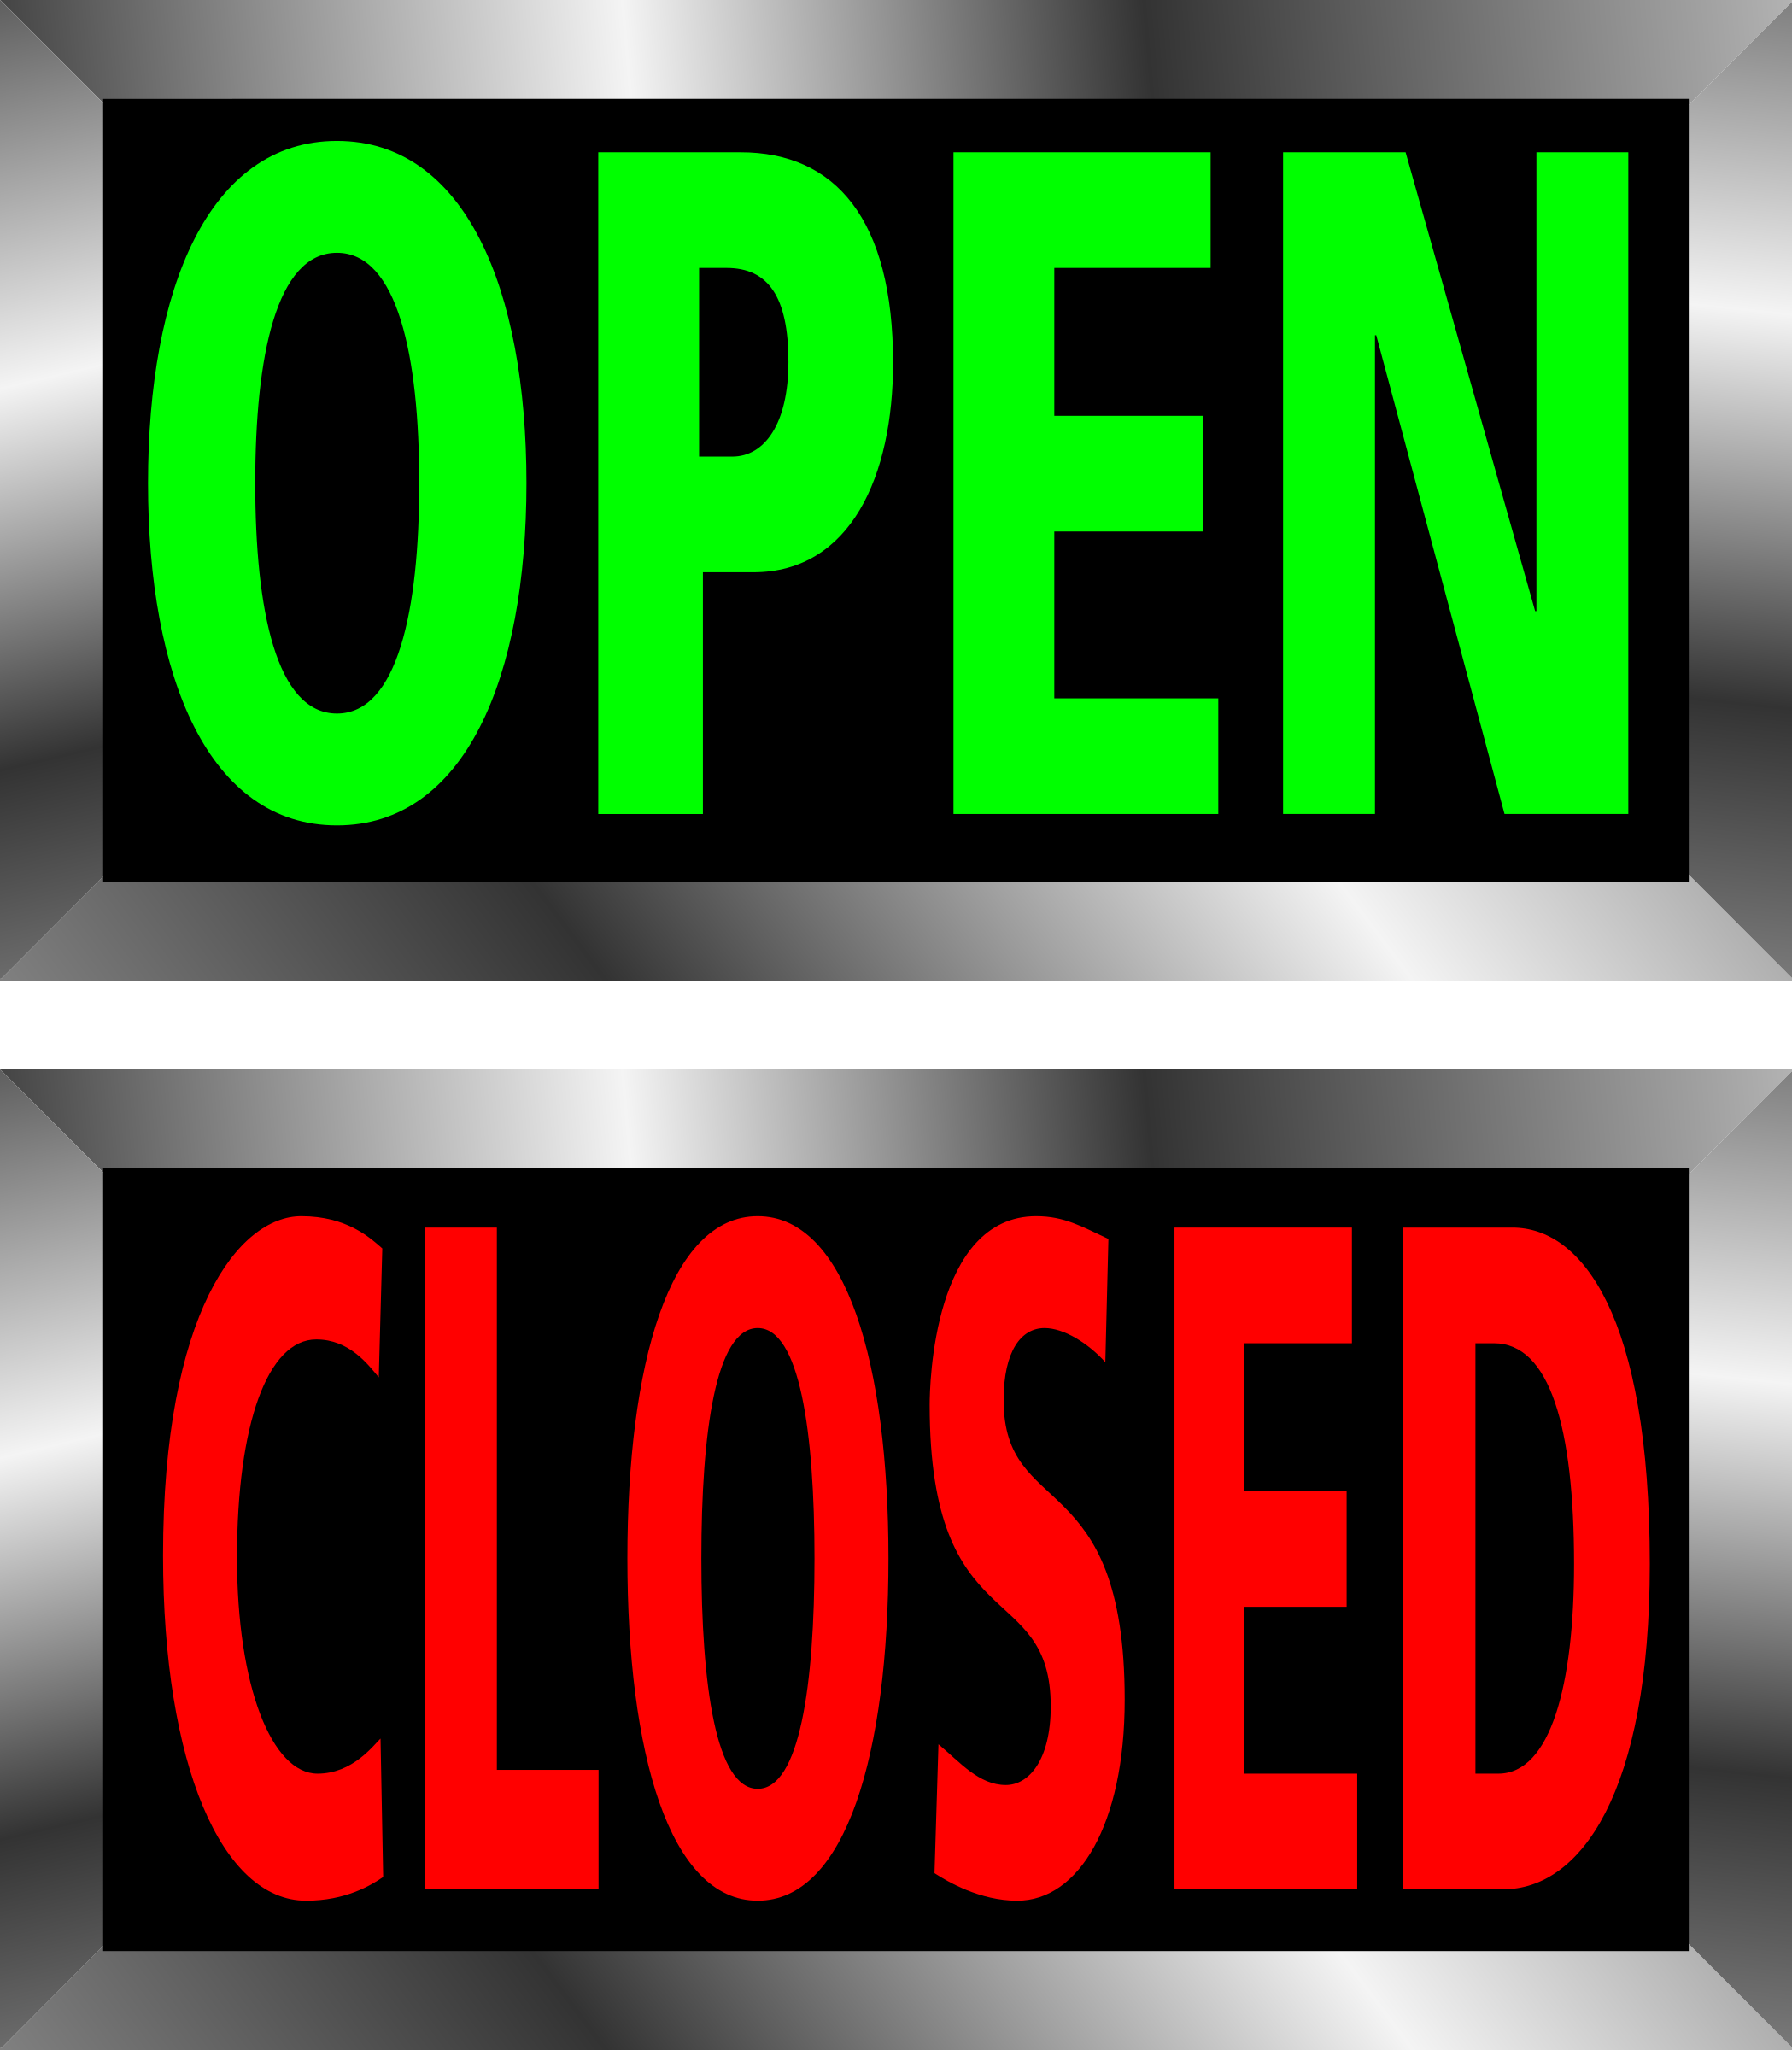 Closed clipart open. And signs big image